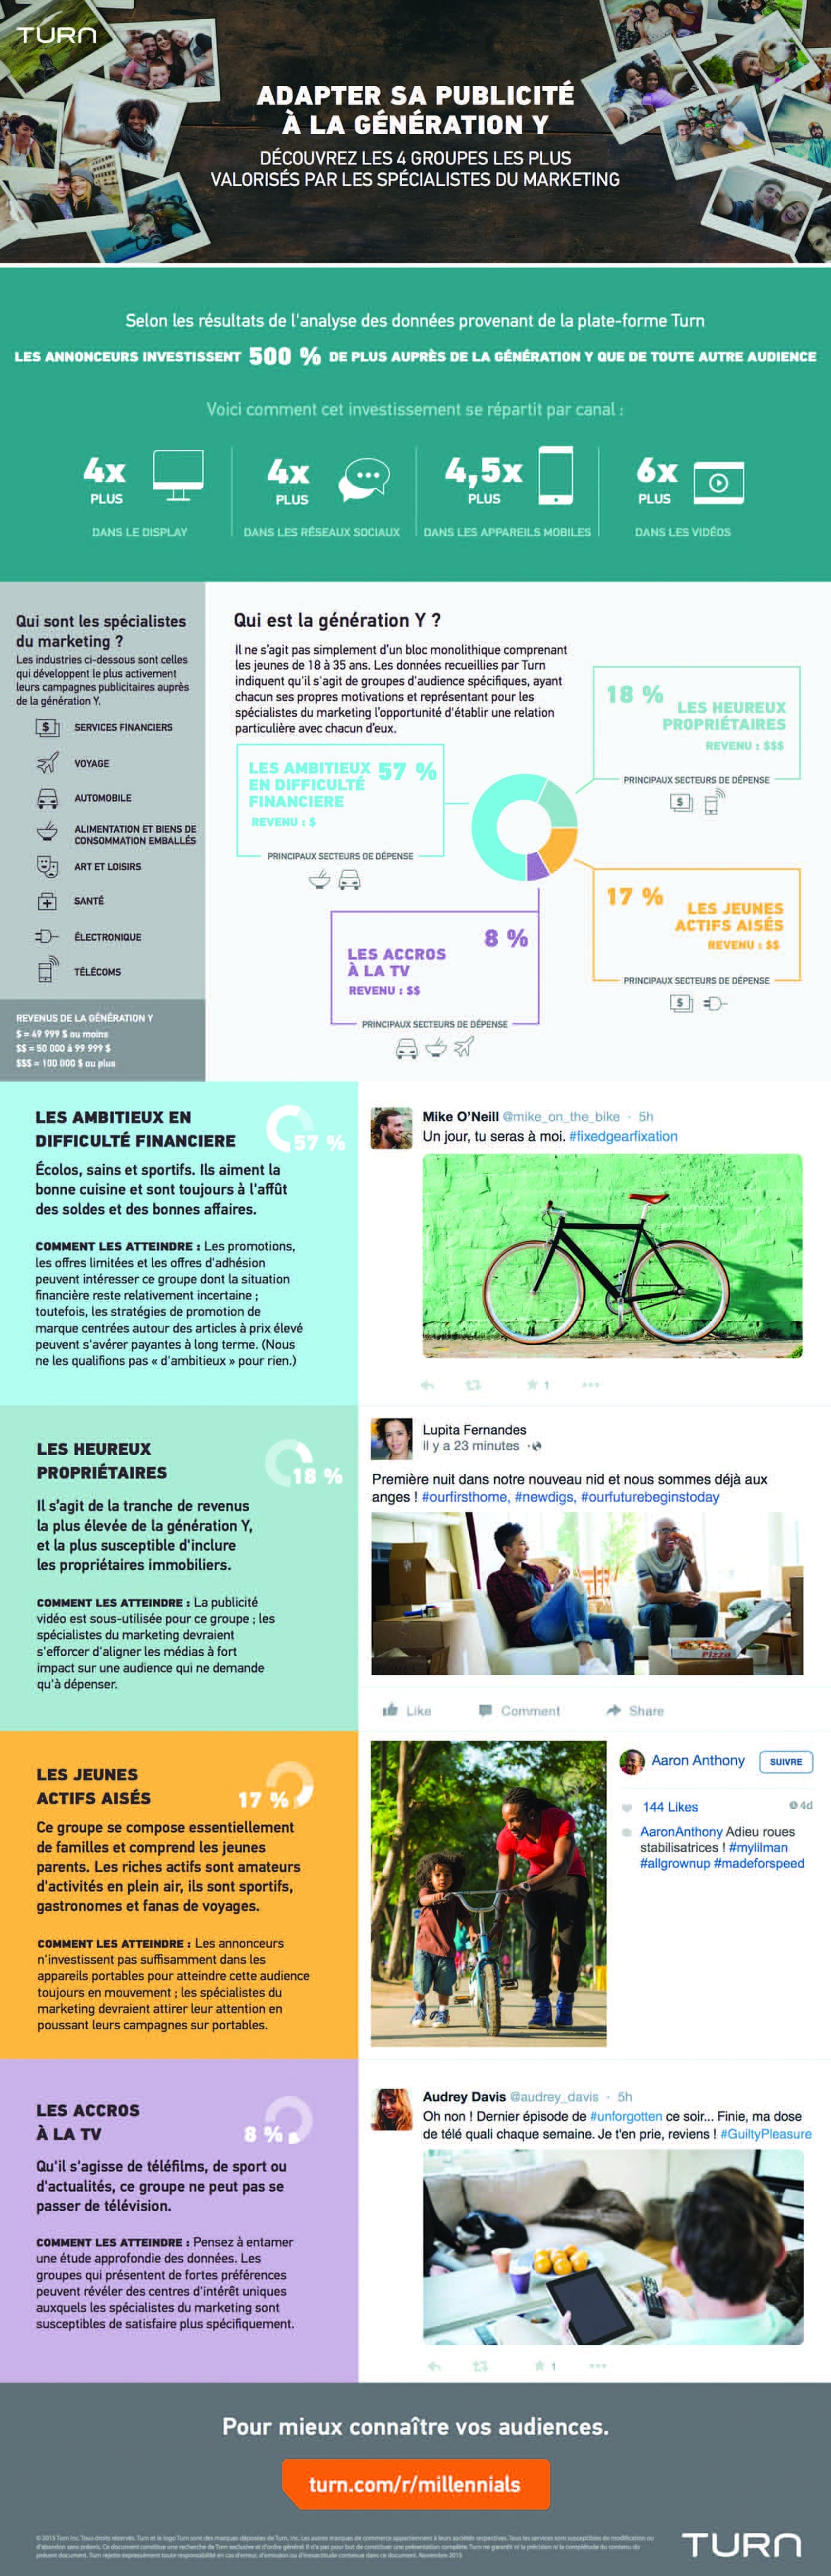 Turn_Millenial_Report_Infographie FR_18022016